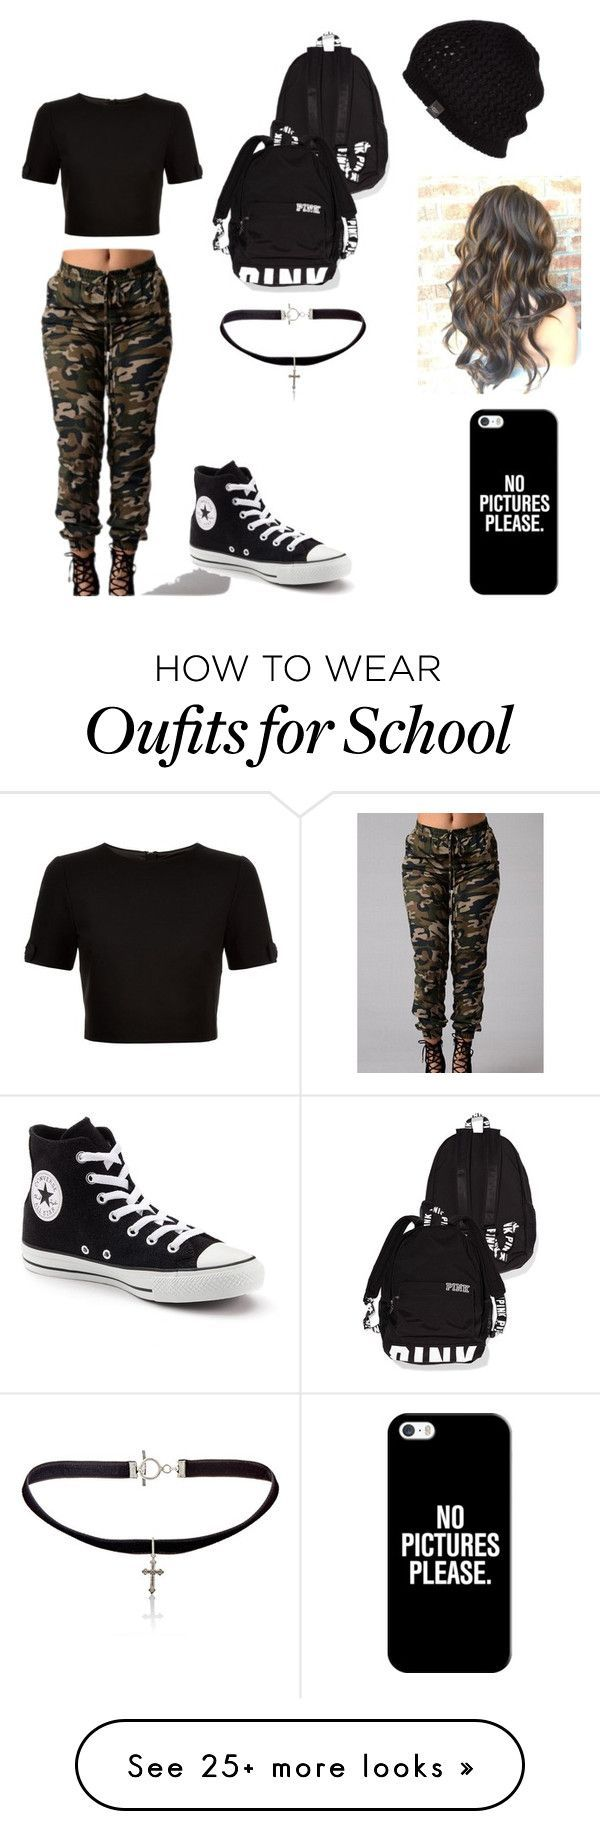 Army look for school by madisa157 on Polyvore featuring Ted Baker, Yves Saint Laurent, Casetify, UGG Australia and Converse